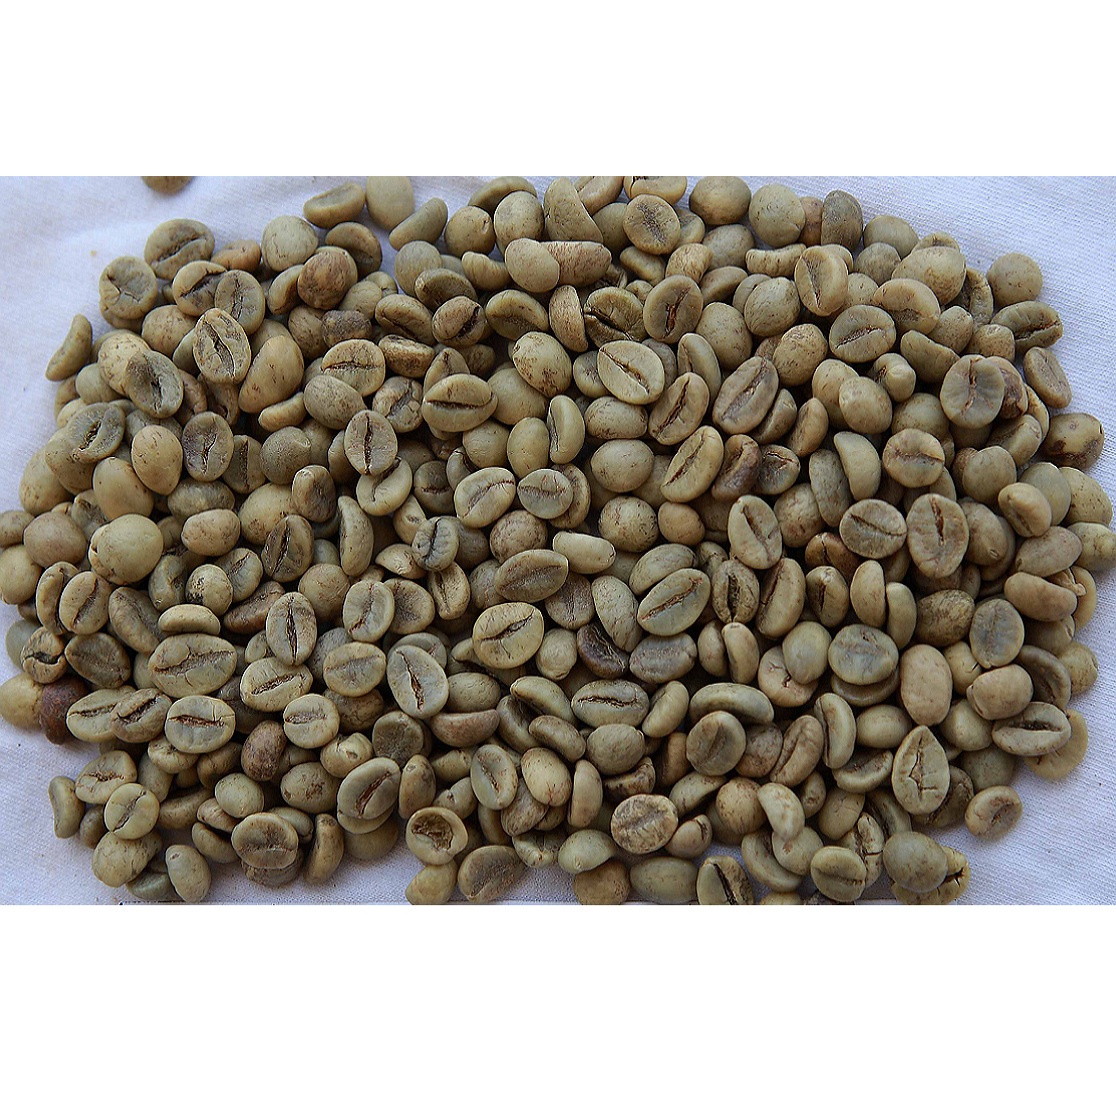 Vietnam Robusta Roasted Coffee Beans with delicious black coffee (Certification)